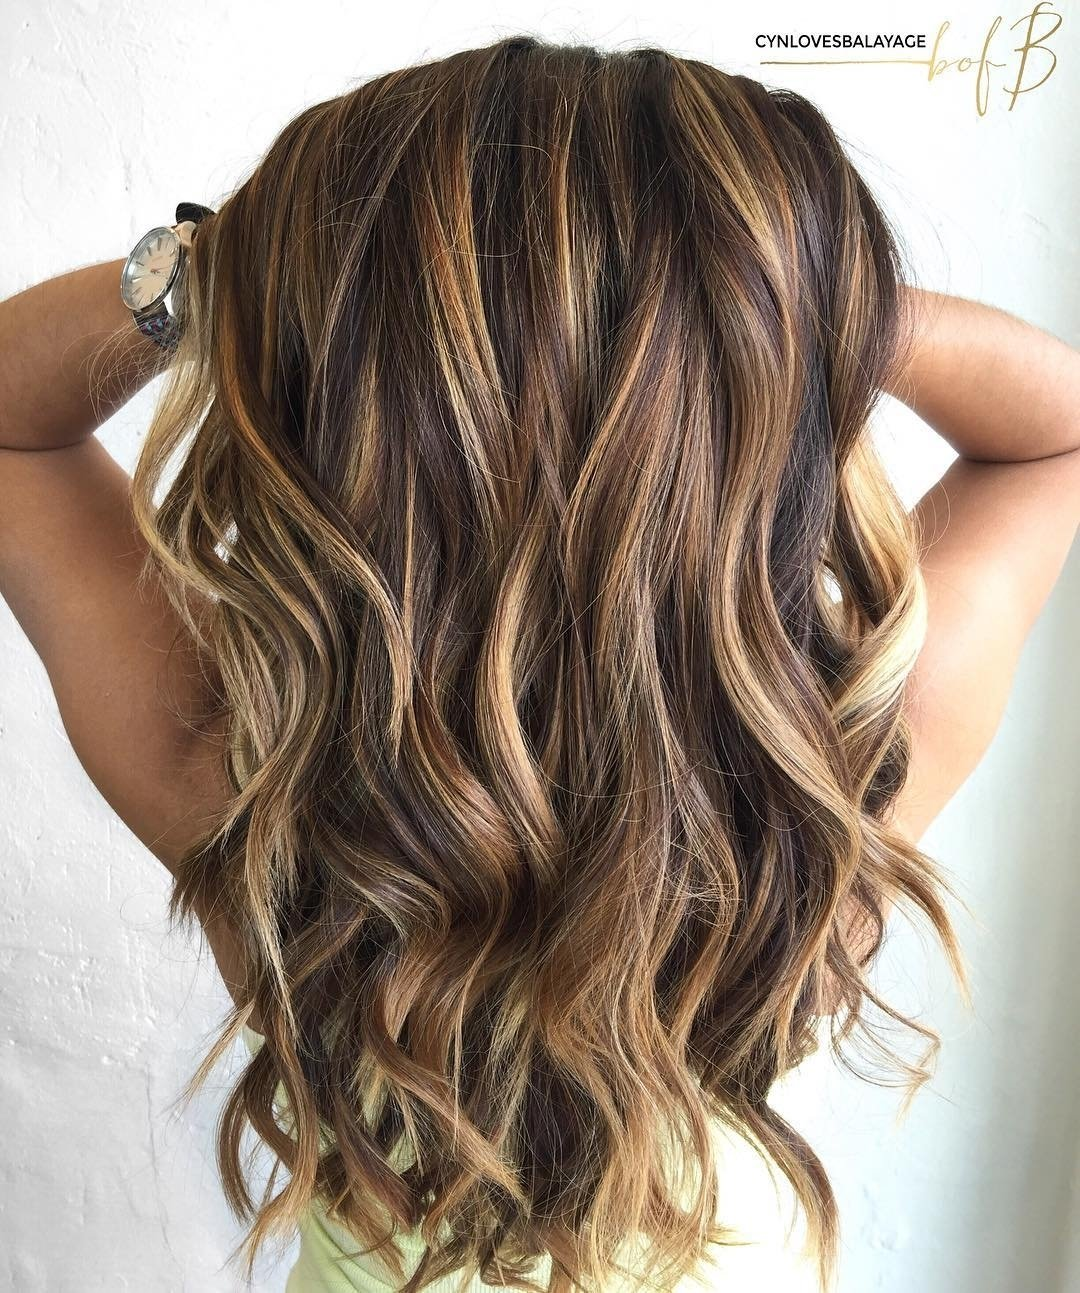 10 Awesome Hair Color Ideas For Brunettes With Highlights looks with caramel highlights on brown and dark brown hair